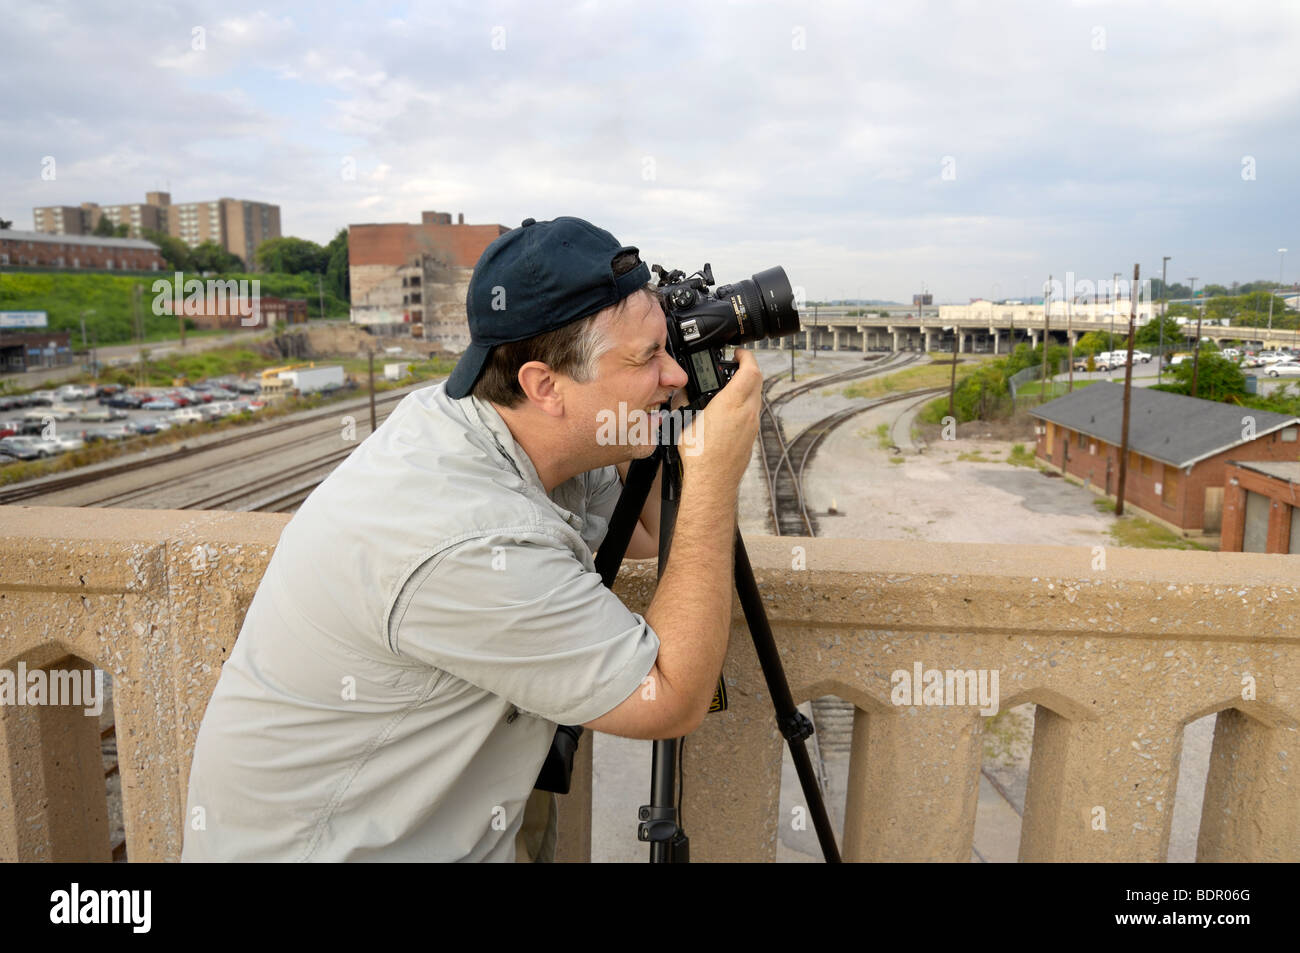 Professional photographer captures an interesting subject from a bridge.  Photo by Darrell Young. - Stock Image